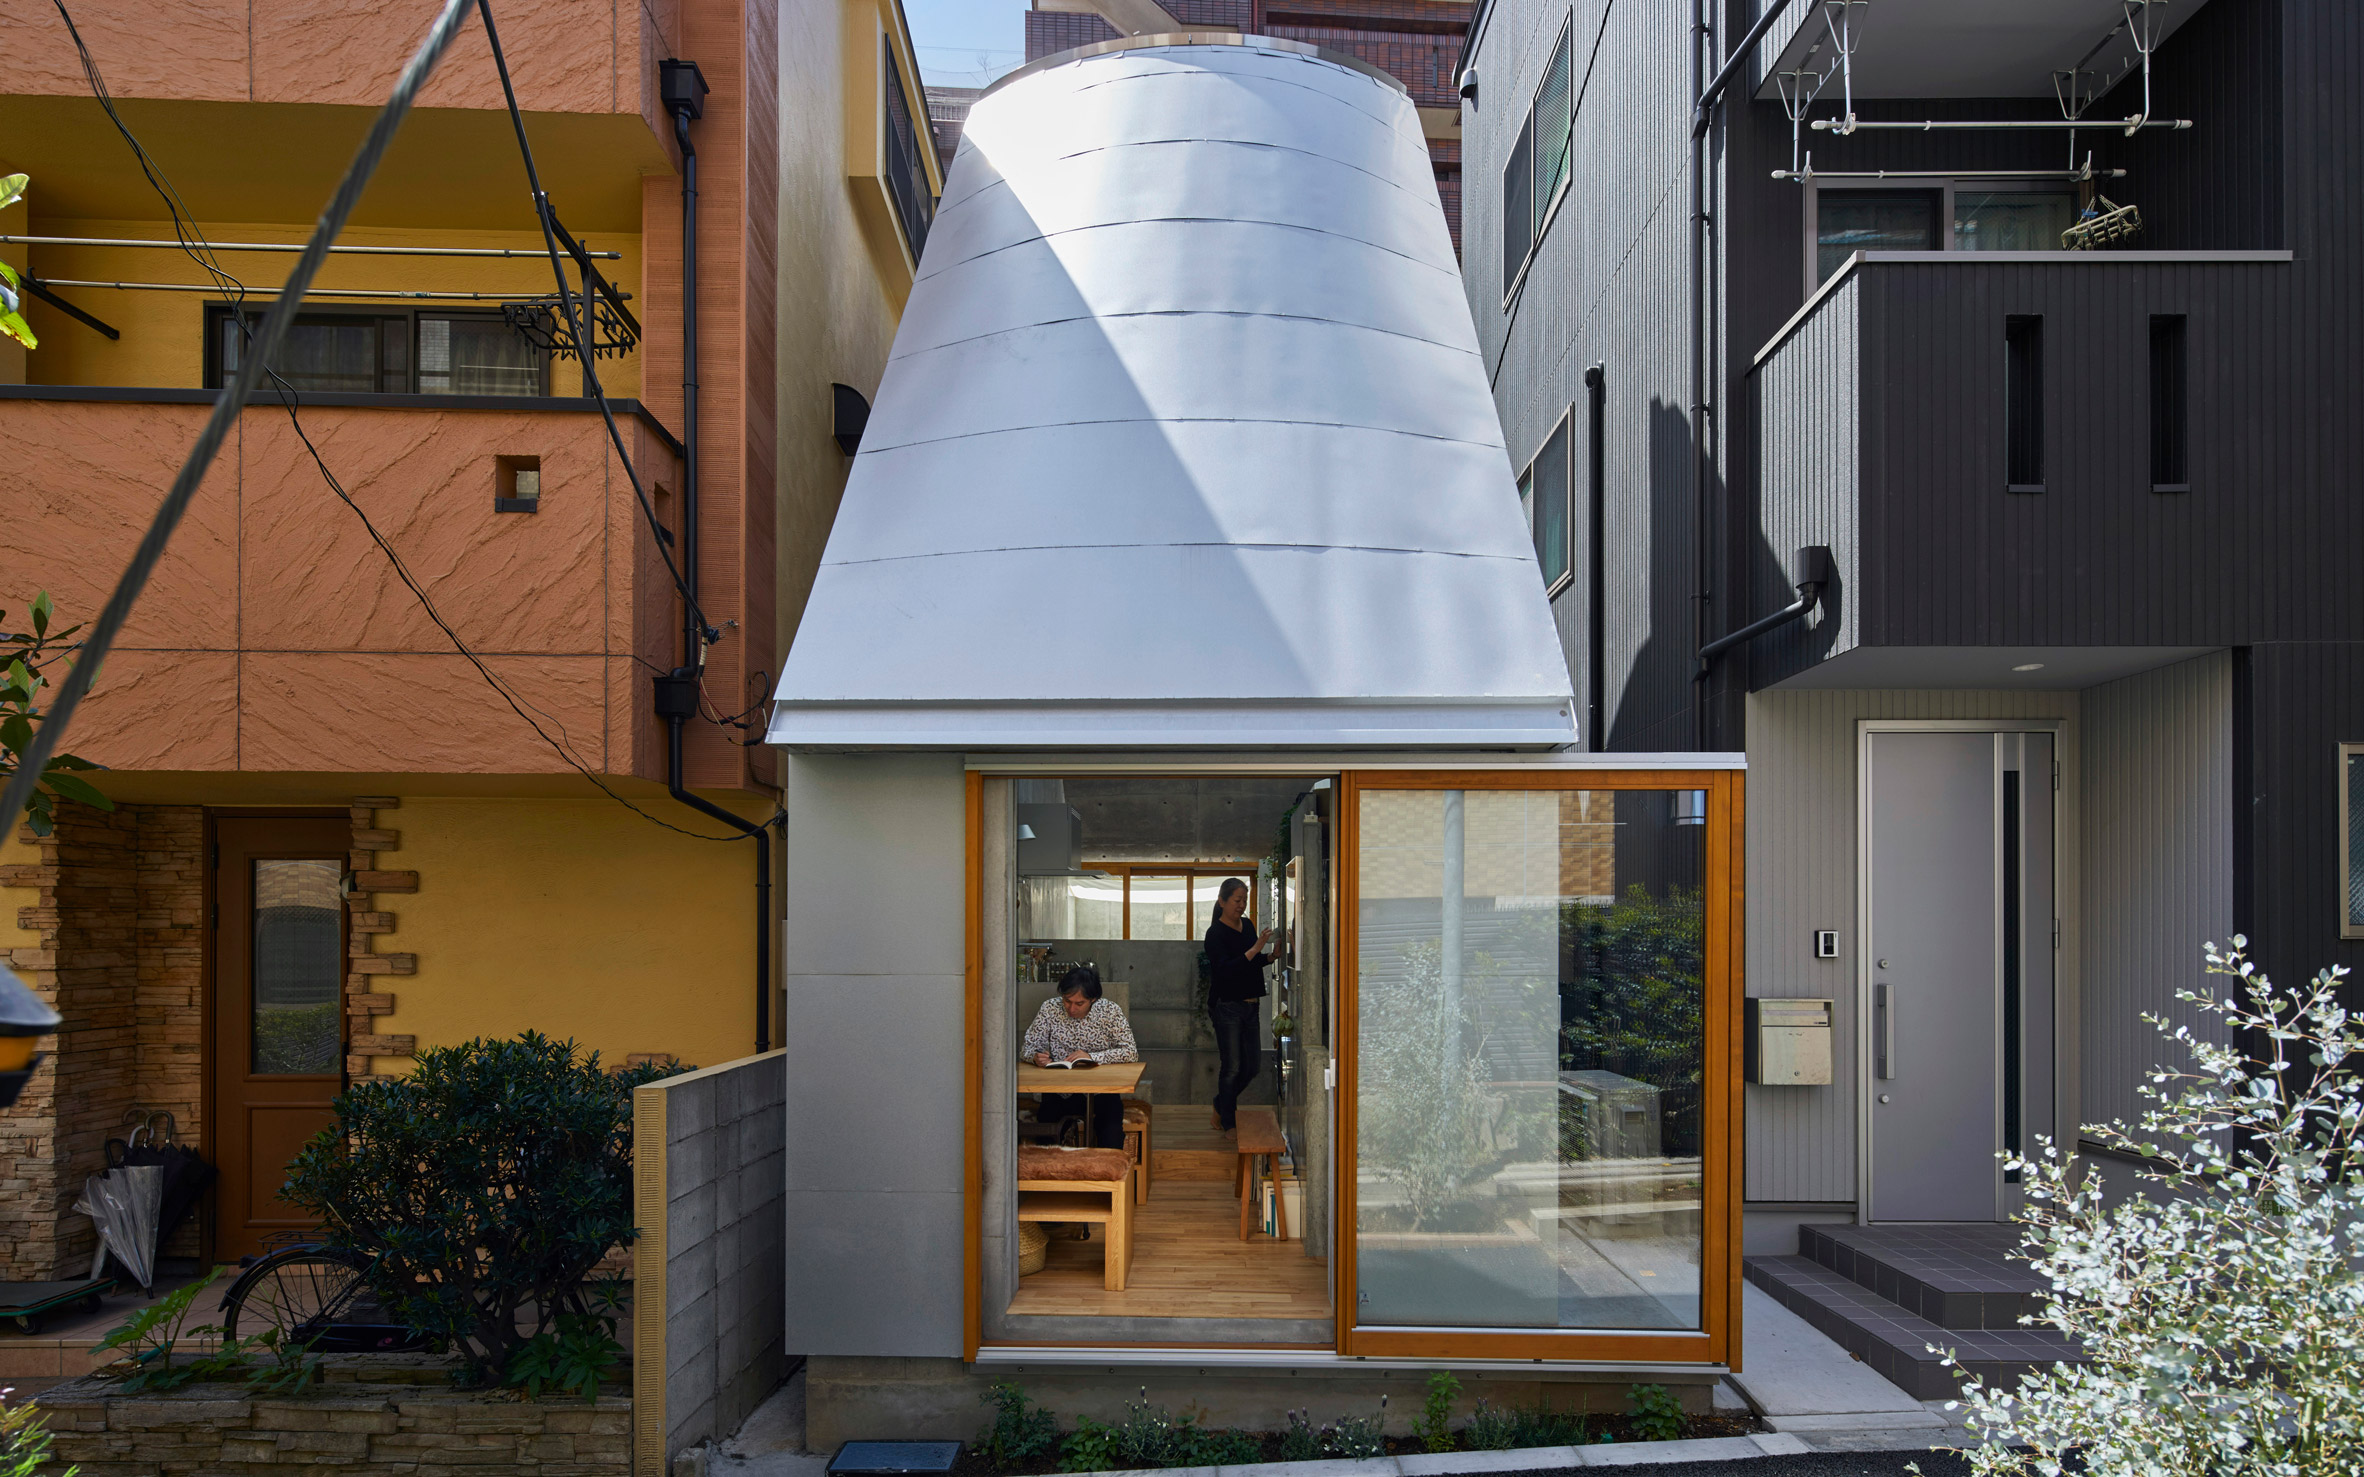 Front of compact house with open window